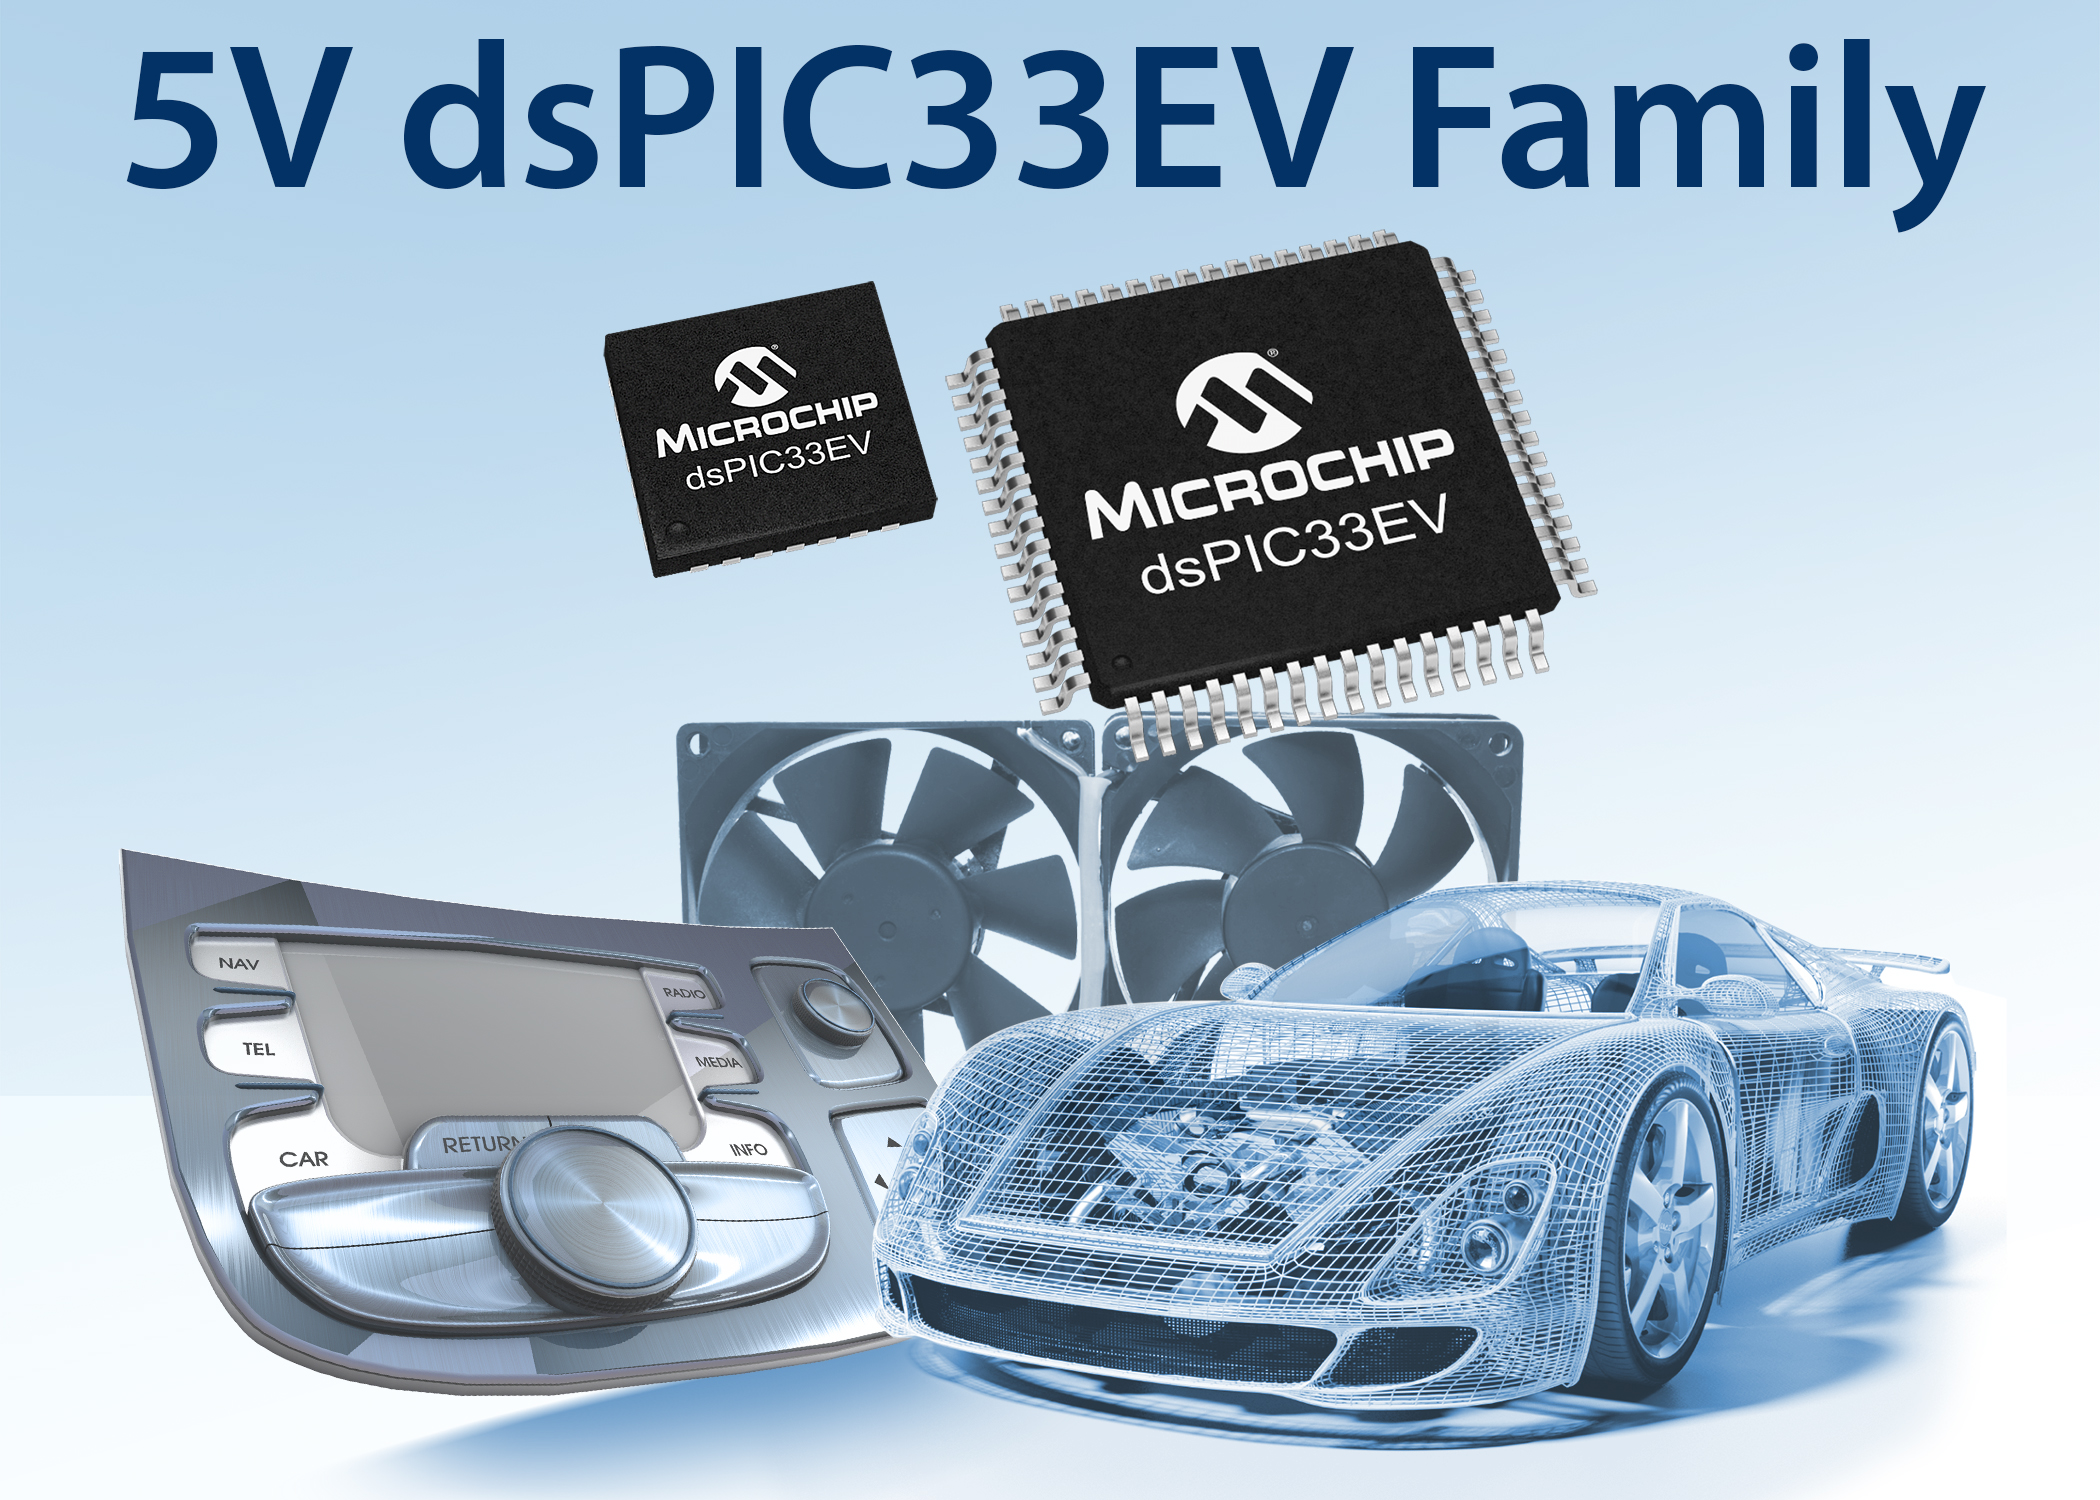 MC1233 - dsPIC33EV Familyhi.jpg